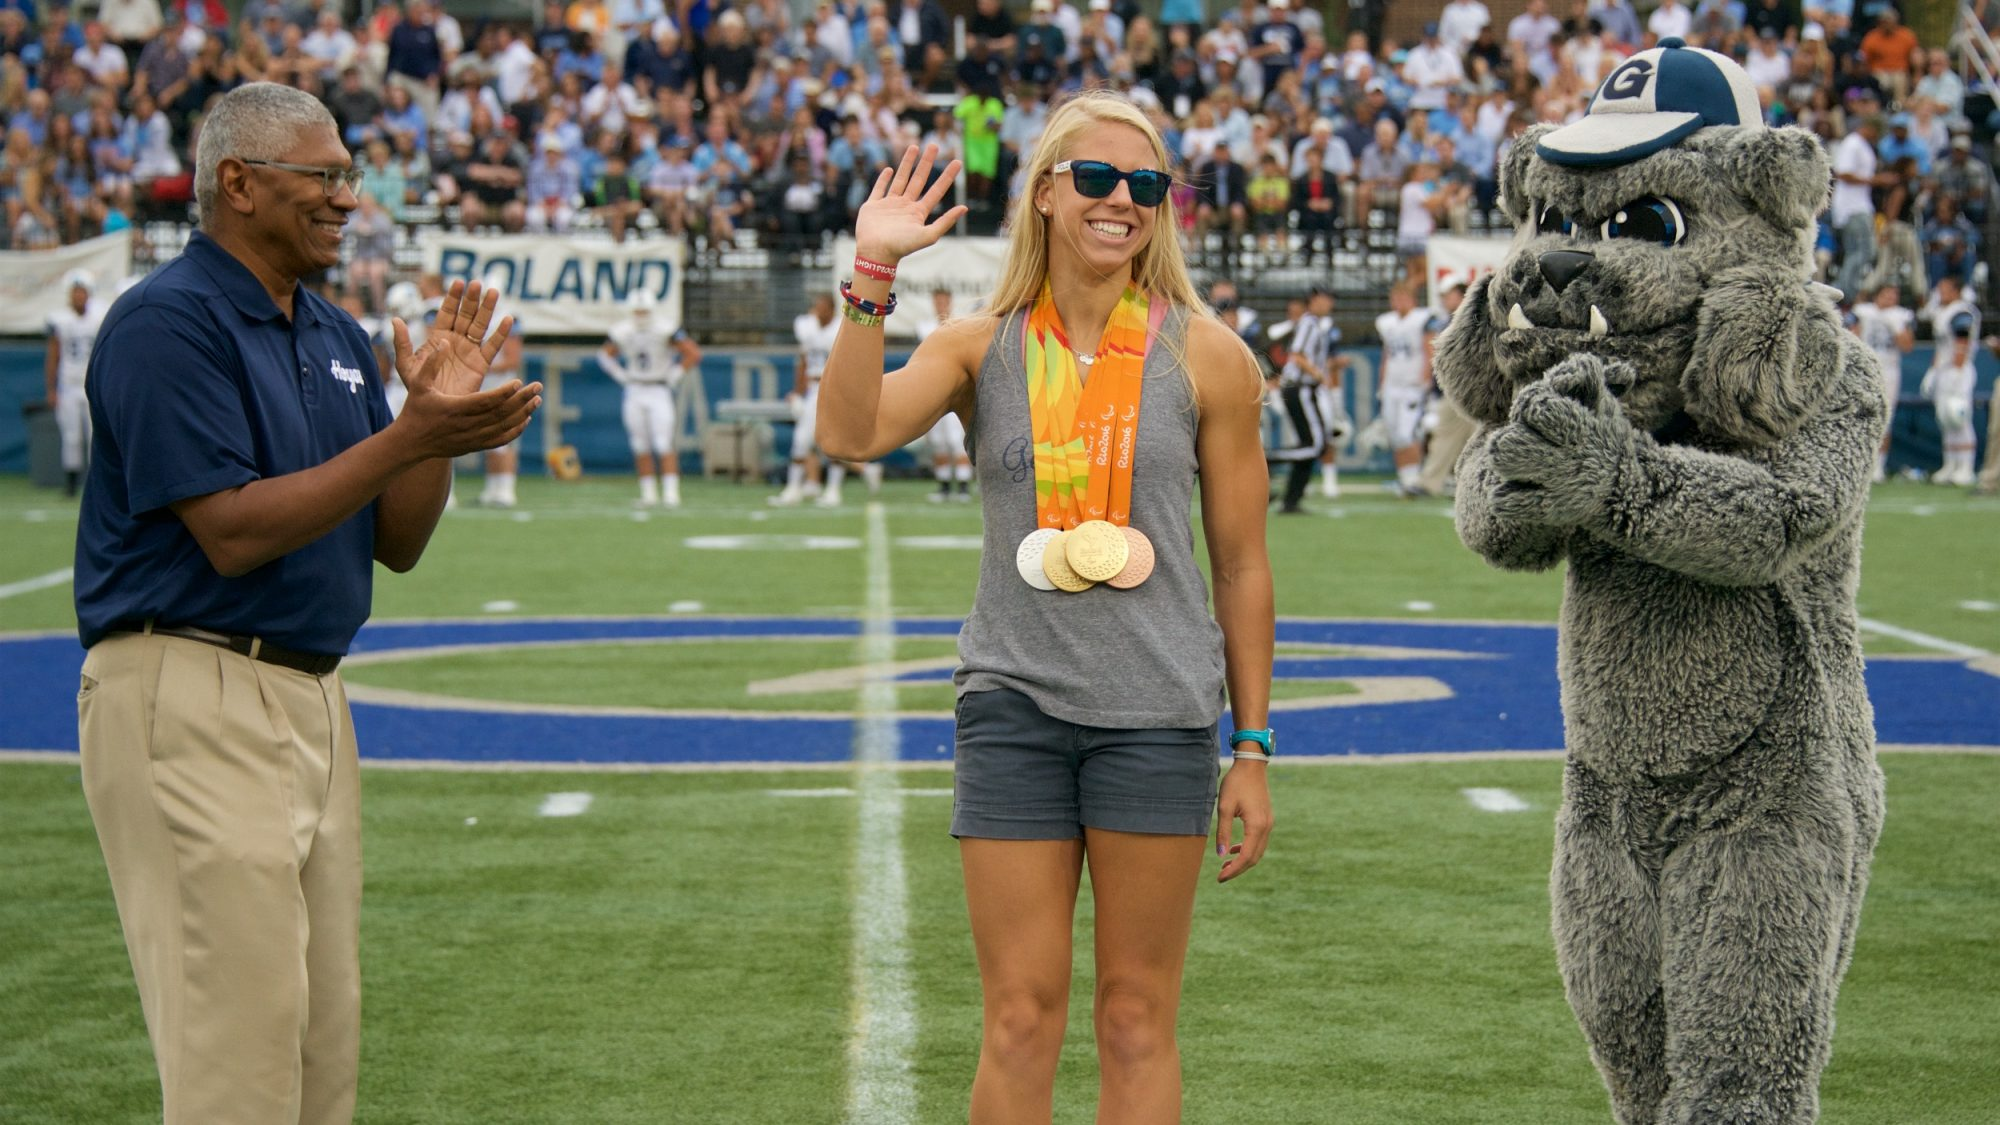 Lee Reed and the Bulldog mascot applaud a waving Michelle Konkoly wearing medals